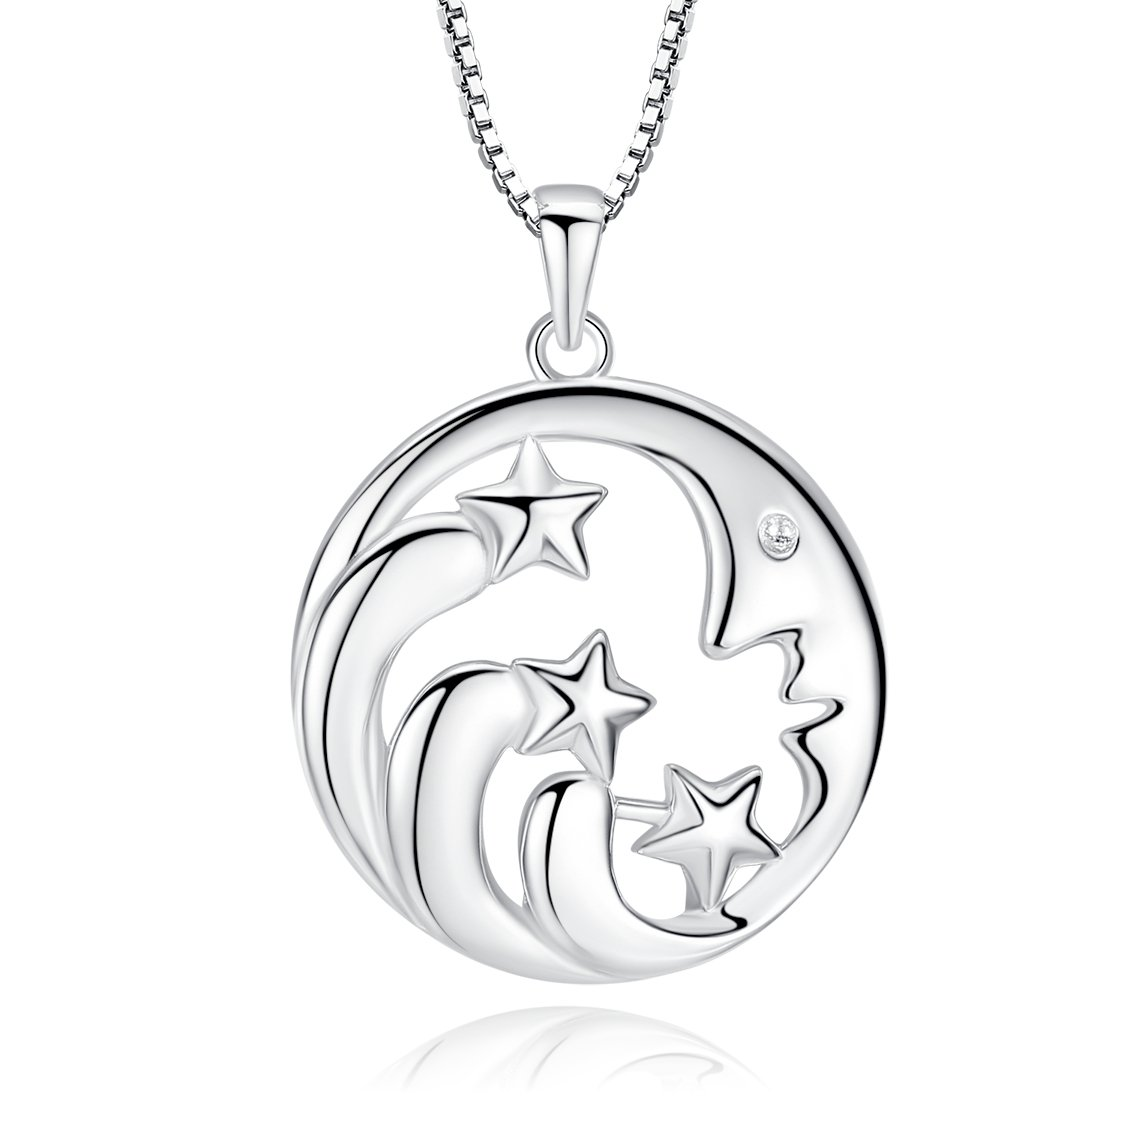 925 Sterling Silver I Love You to the Moon and Back Pendant Necklace Moon Stars Jewelry for Women (moonstrar)